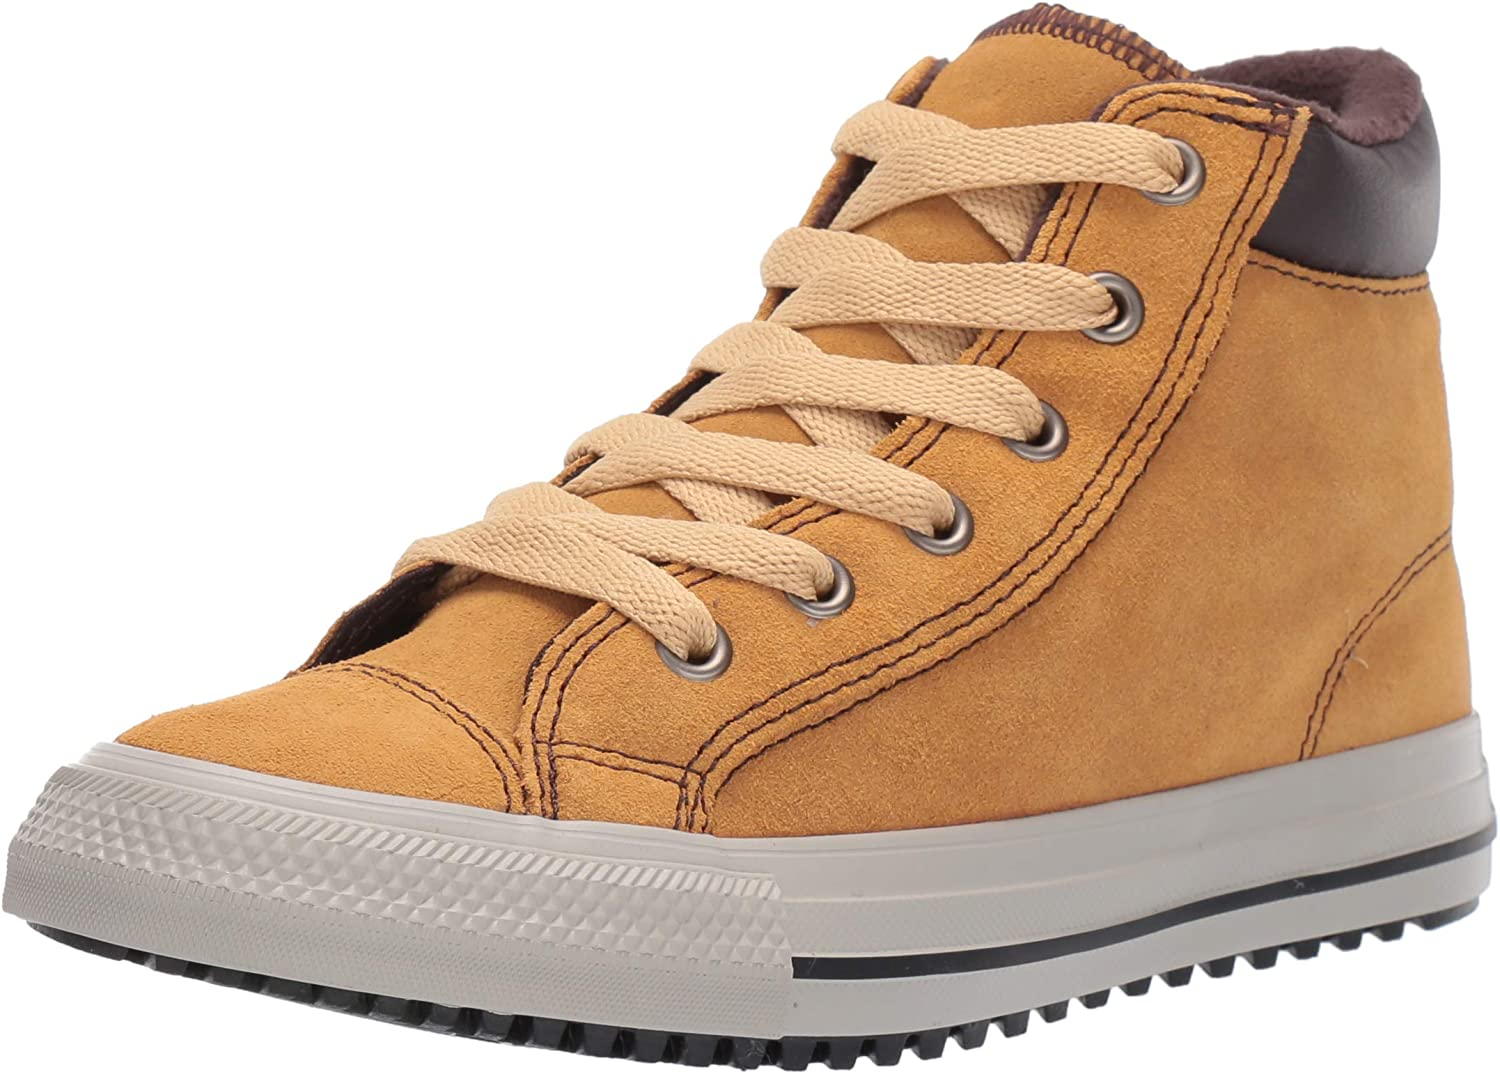 Star Pc Boots on Mars Sneaker